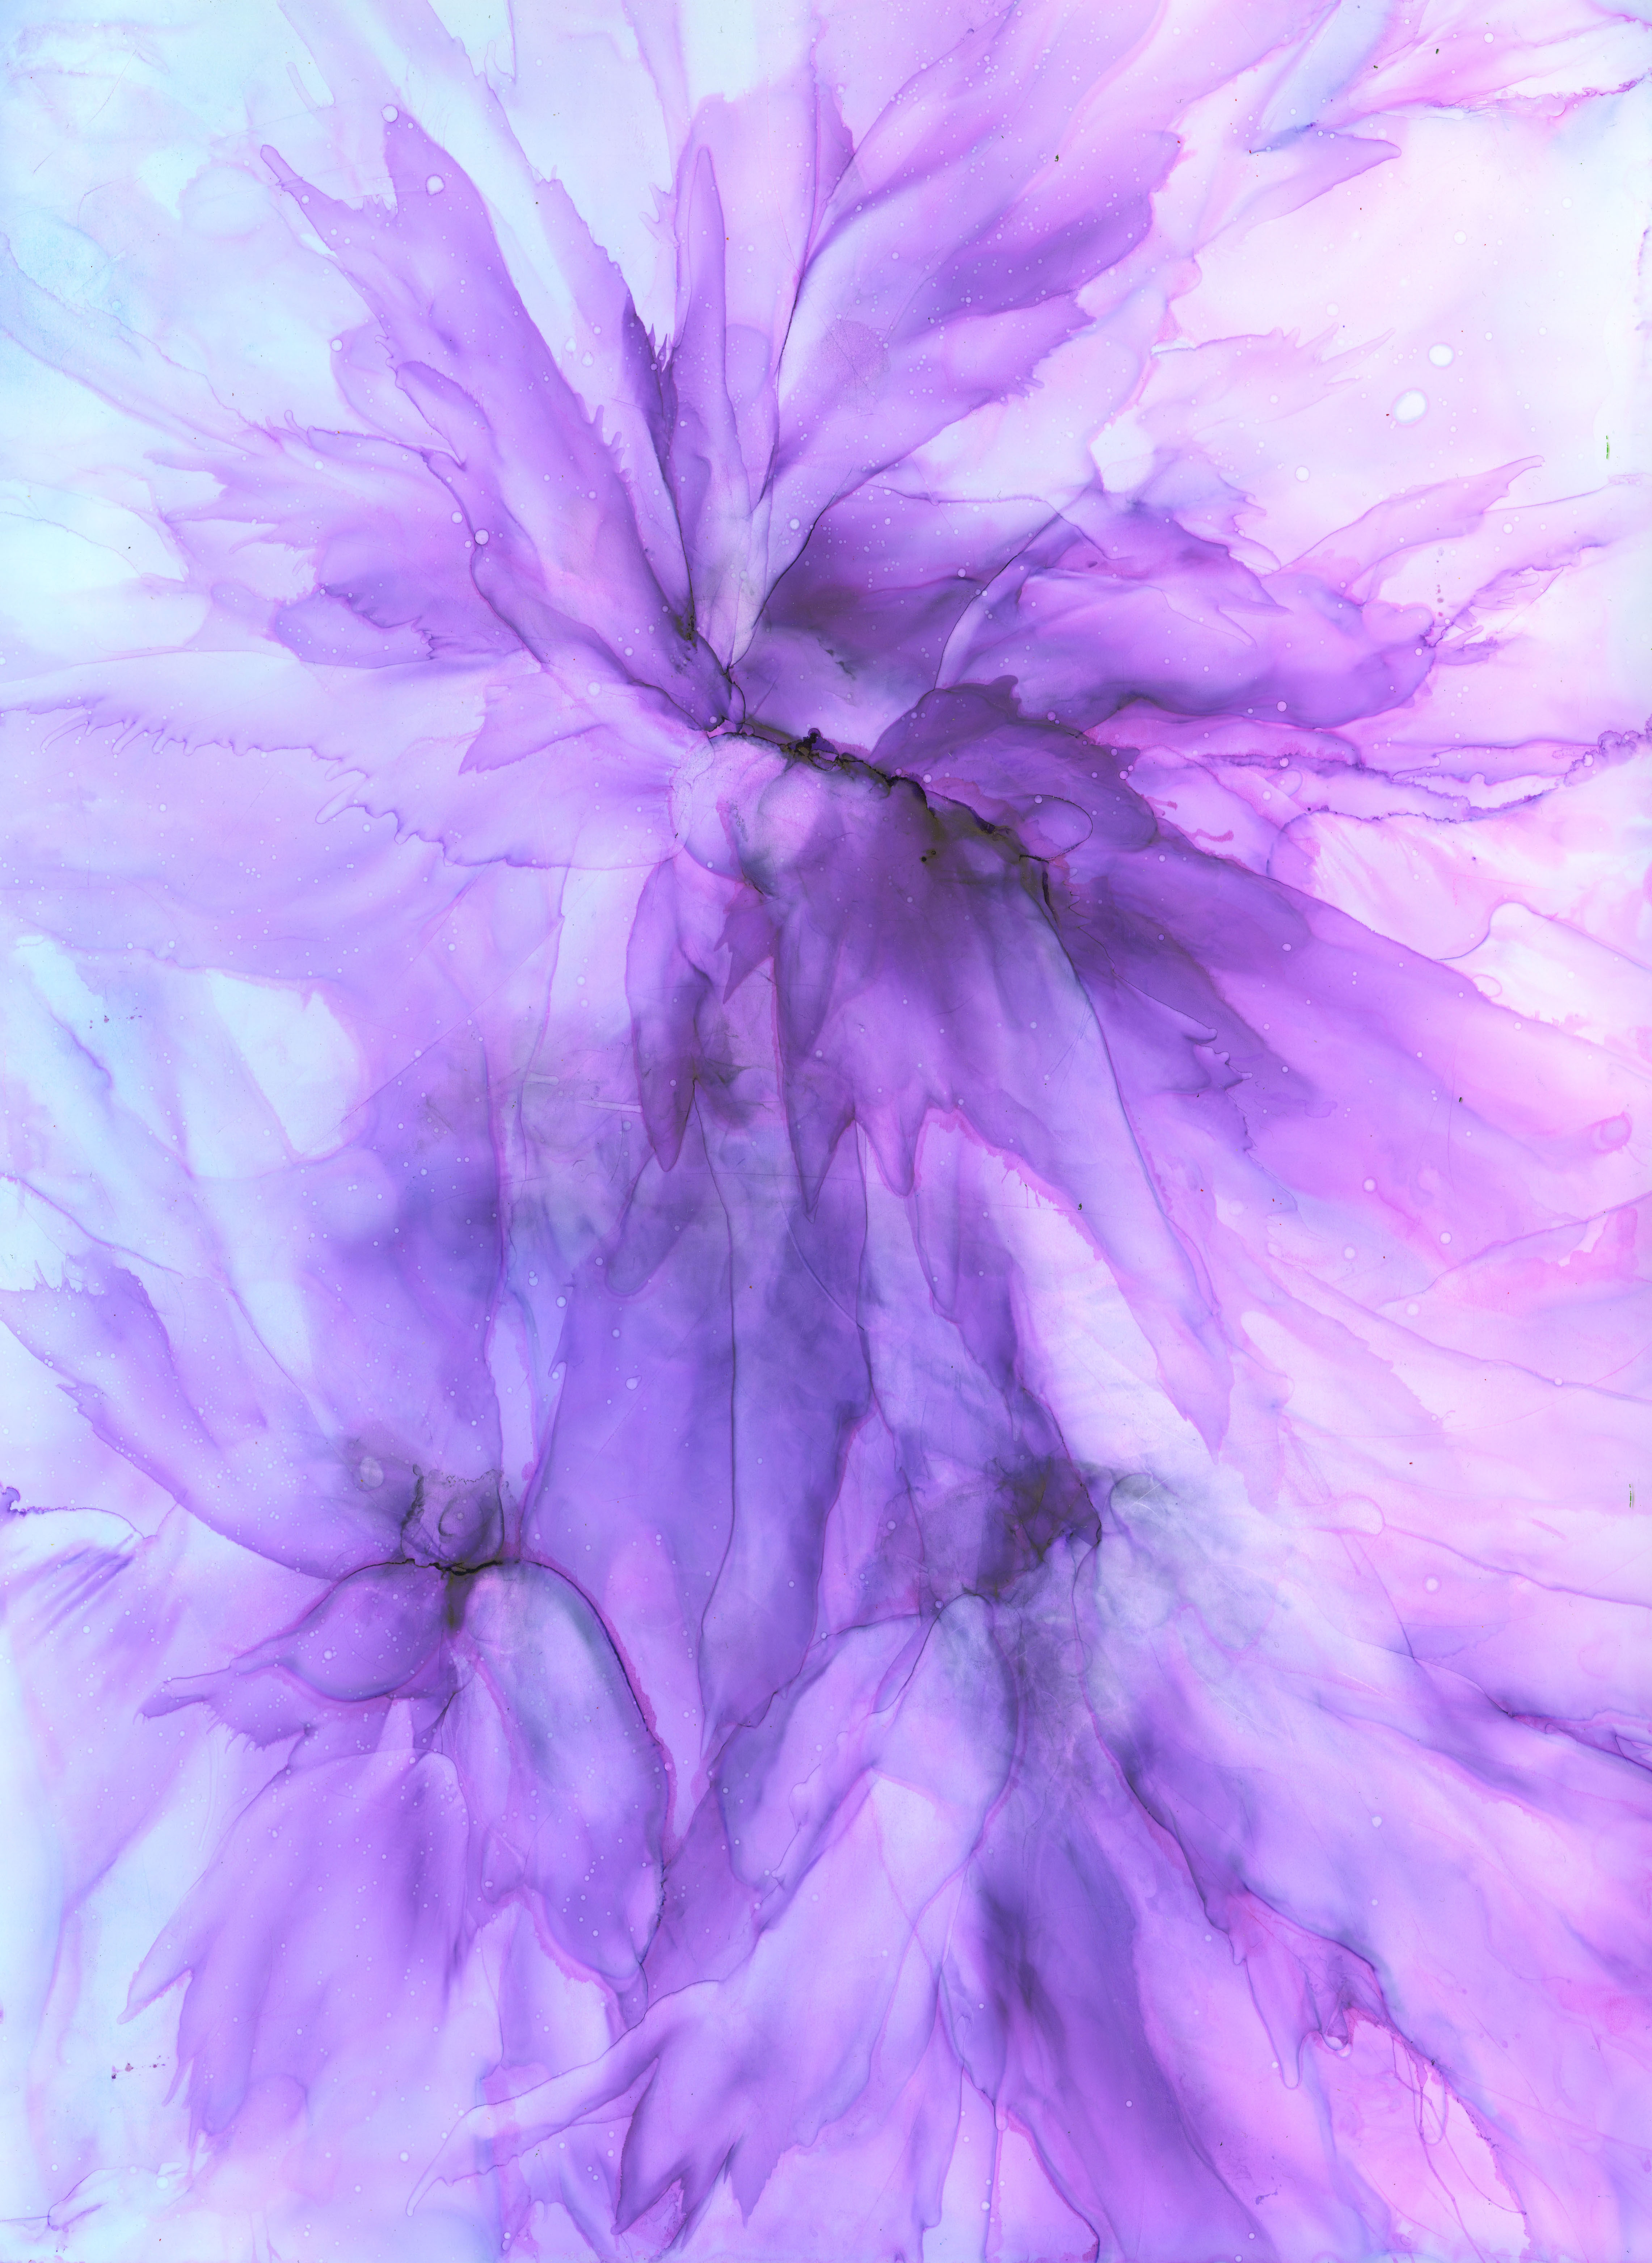 Feathery Flowers - Alcohol Ink- 12 X 16 - $160